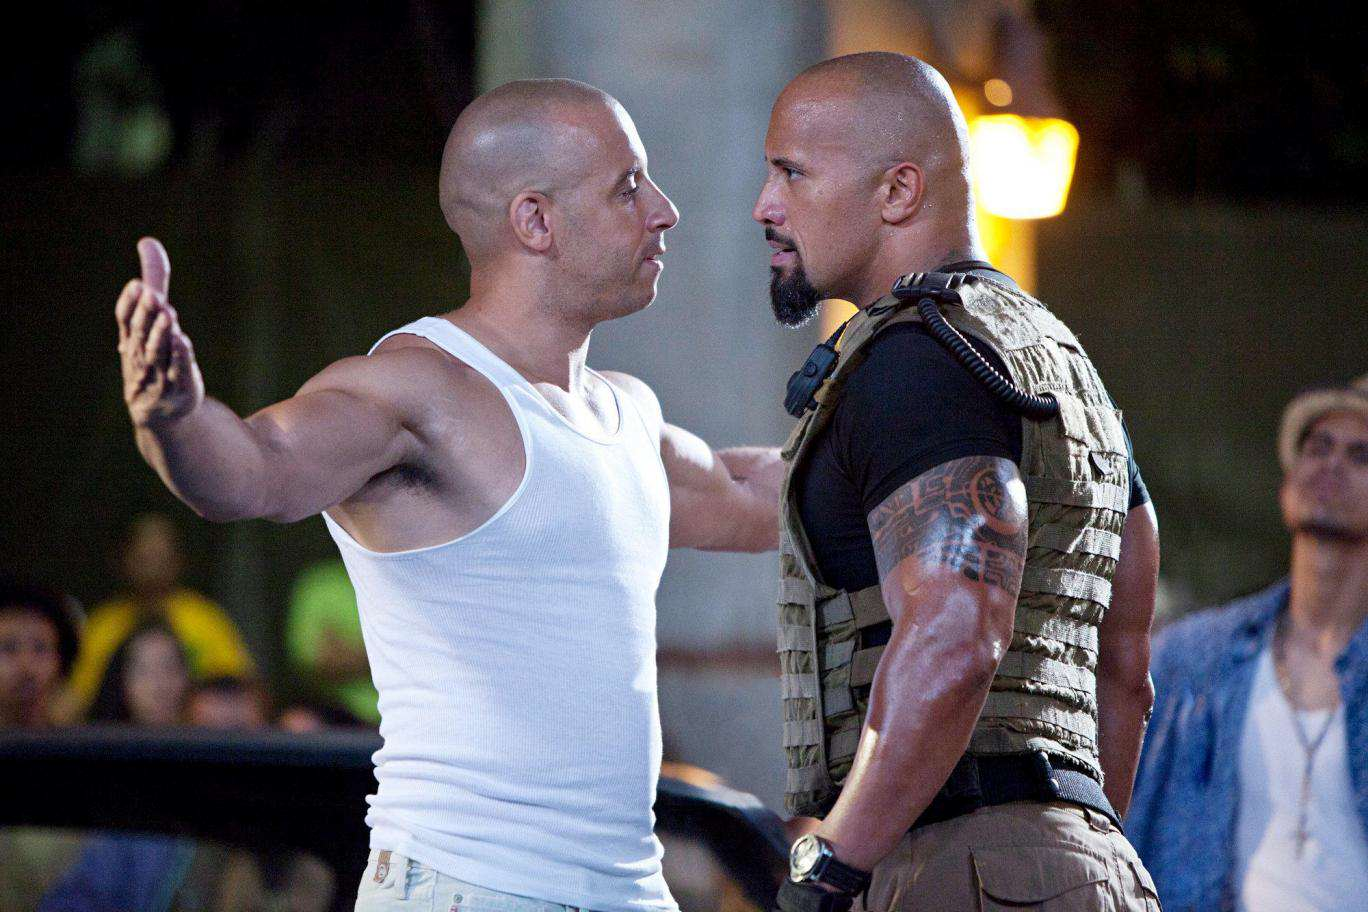 fast five01 The Rocks Fast 8 Co Stars Are Pretty Furious With Him After Rant